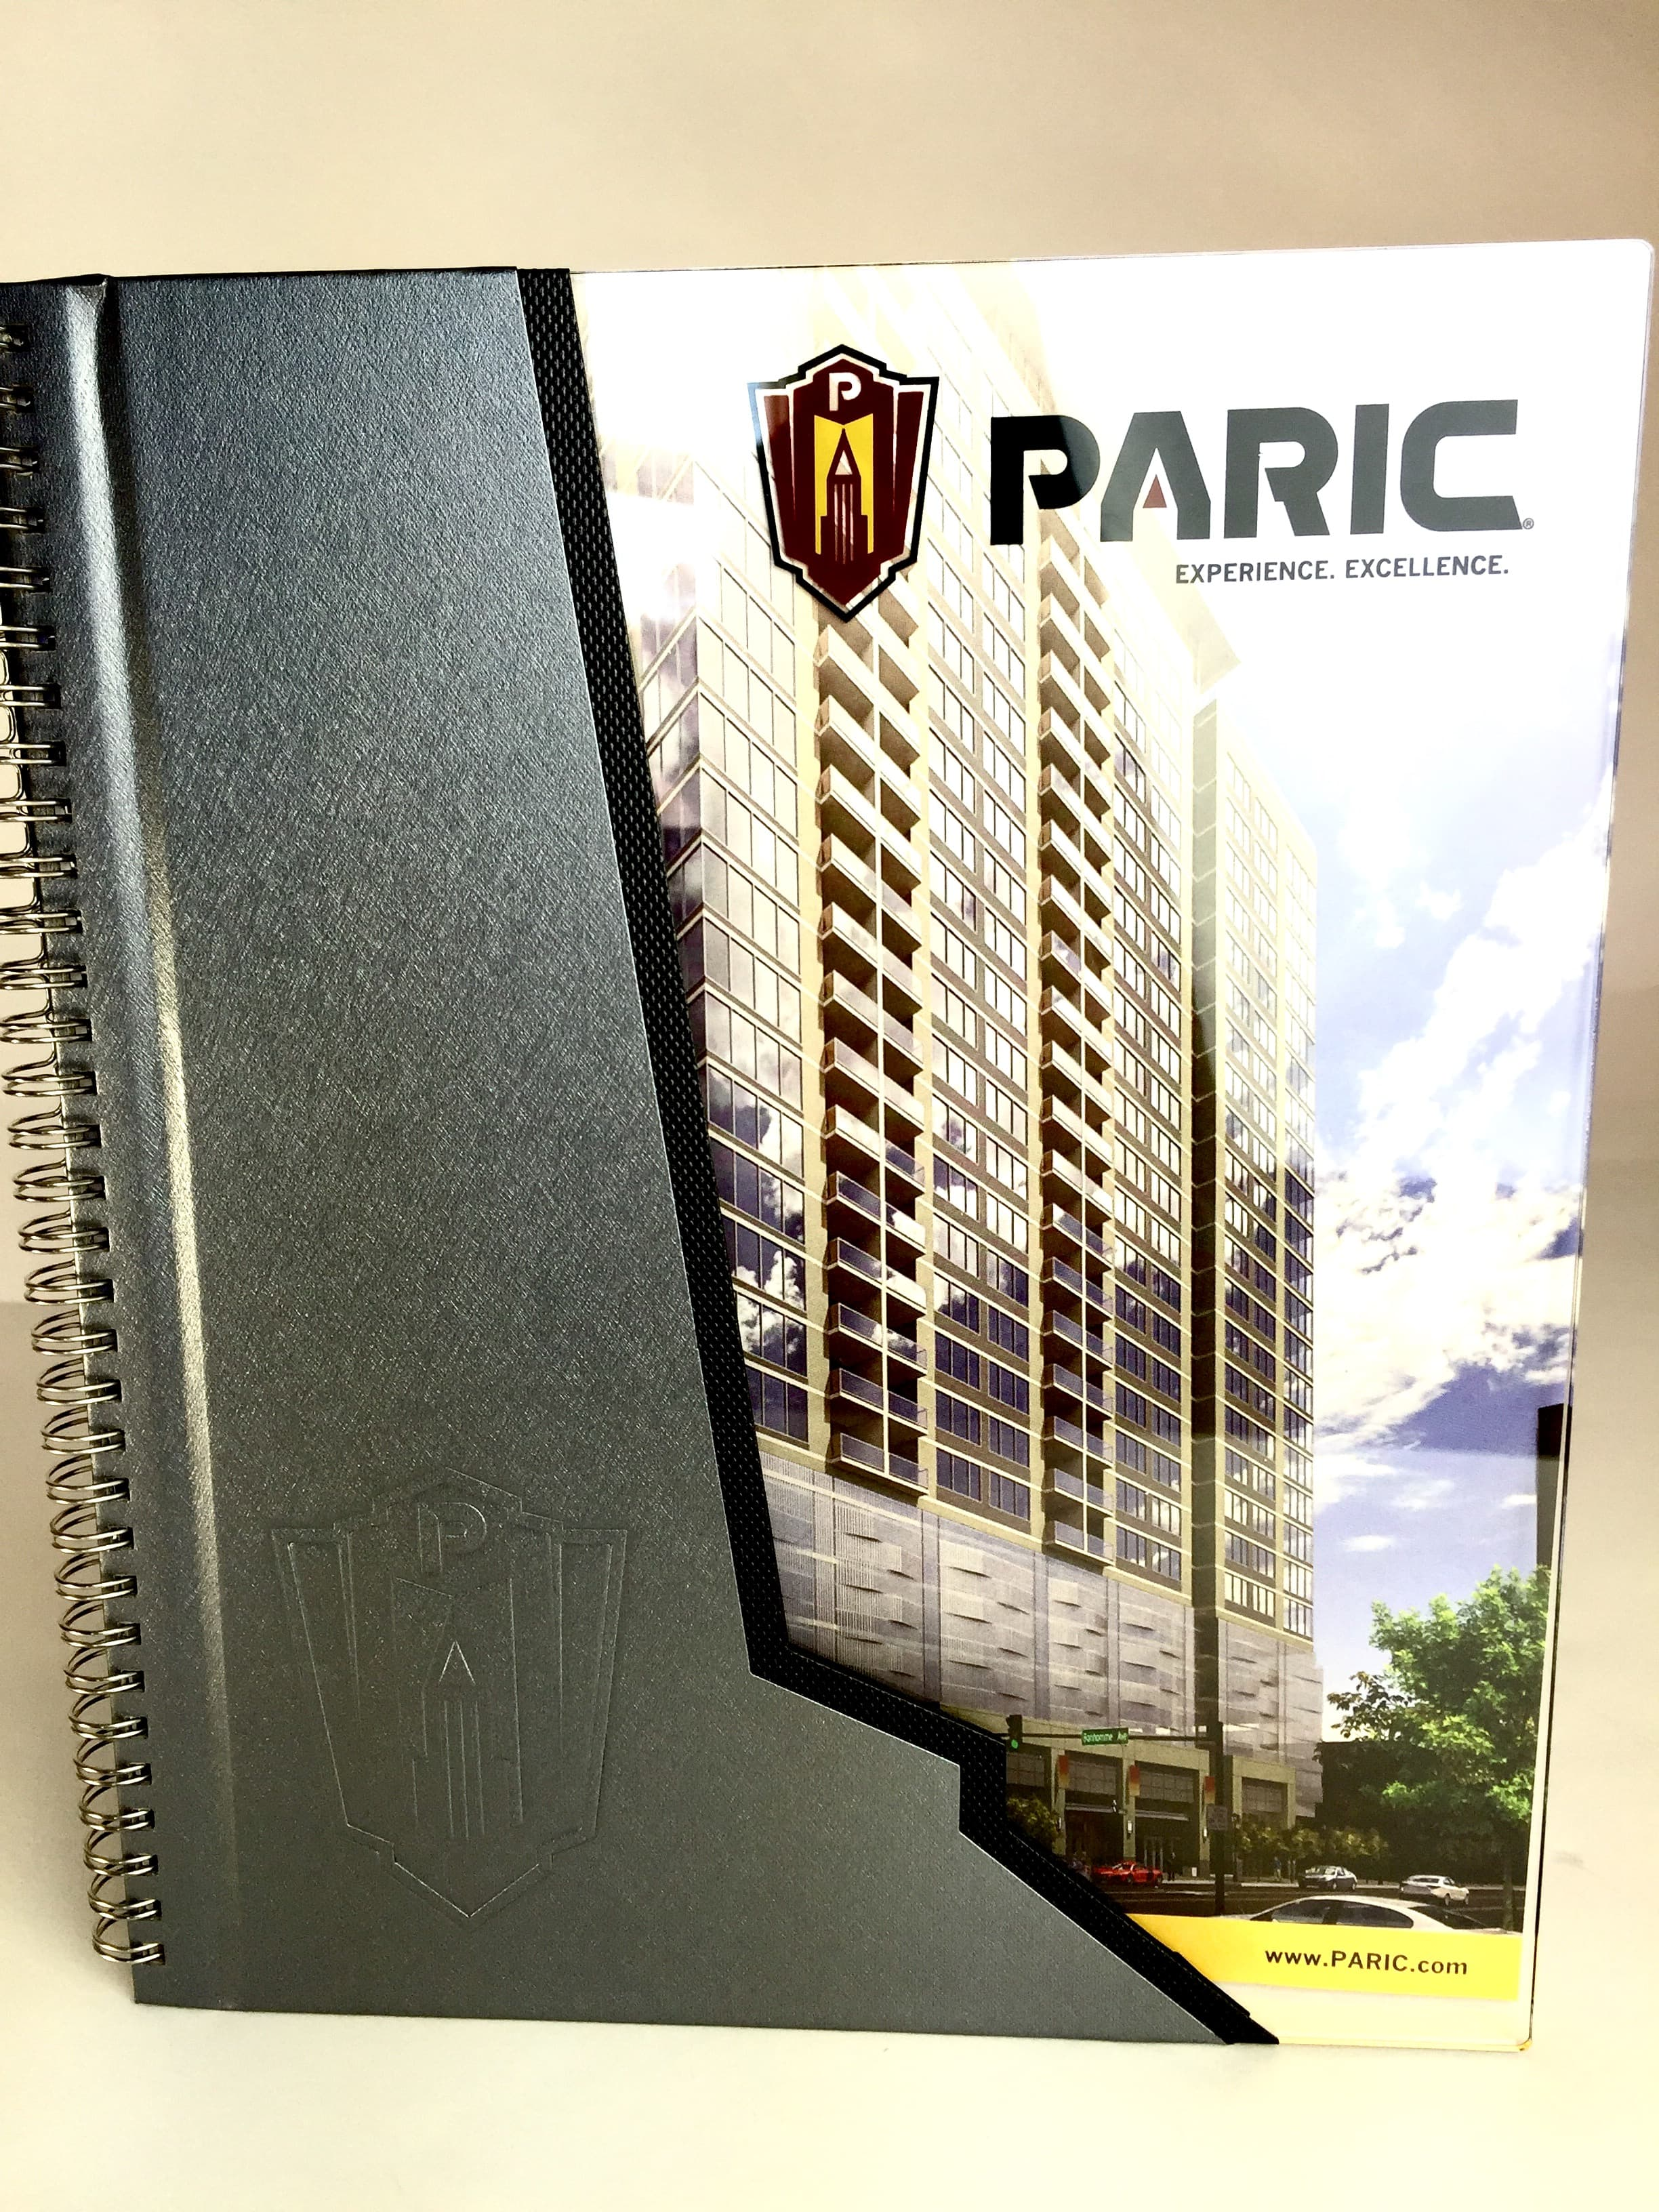 Paric Pic 2 – Copy